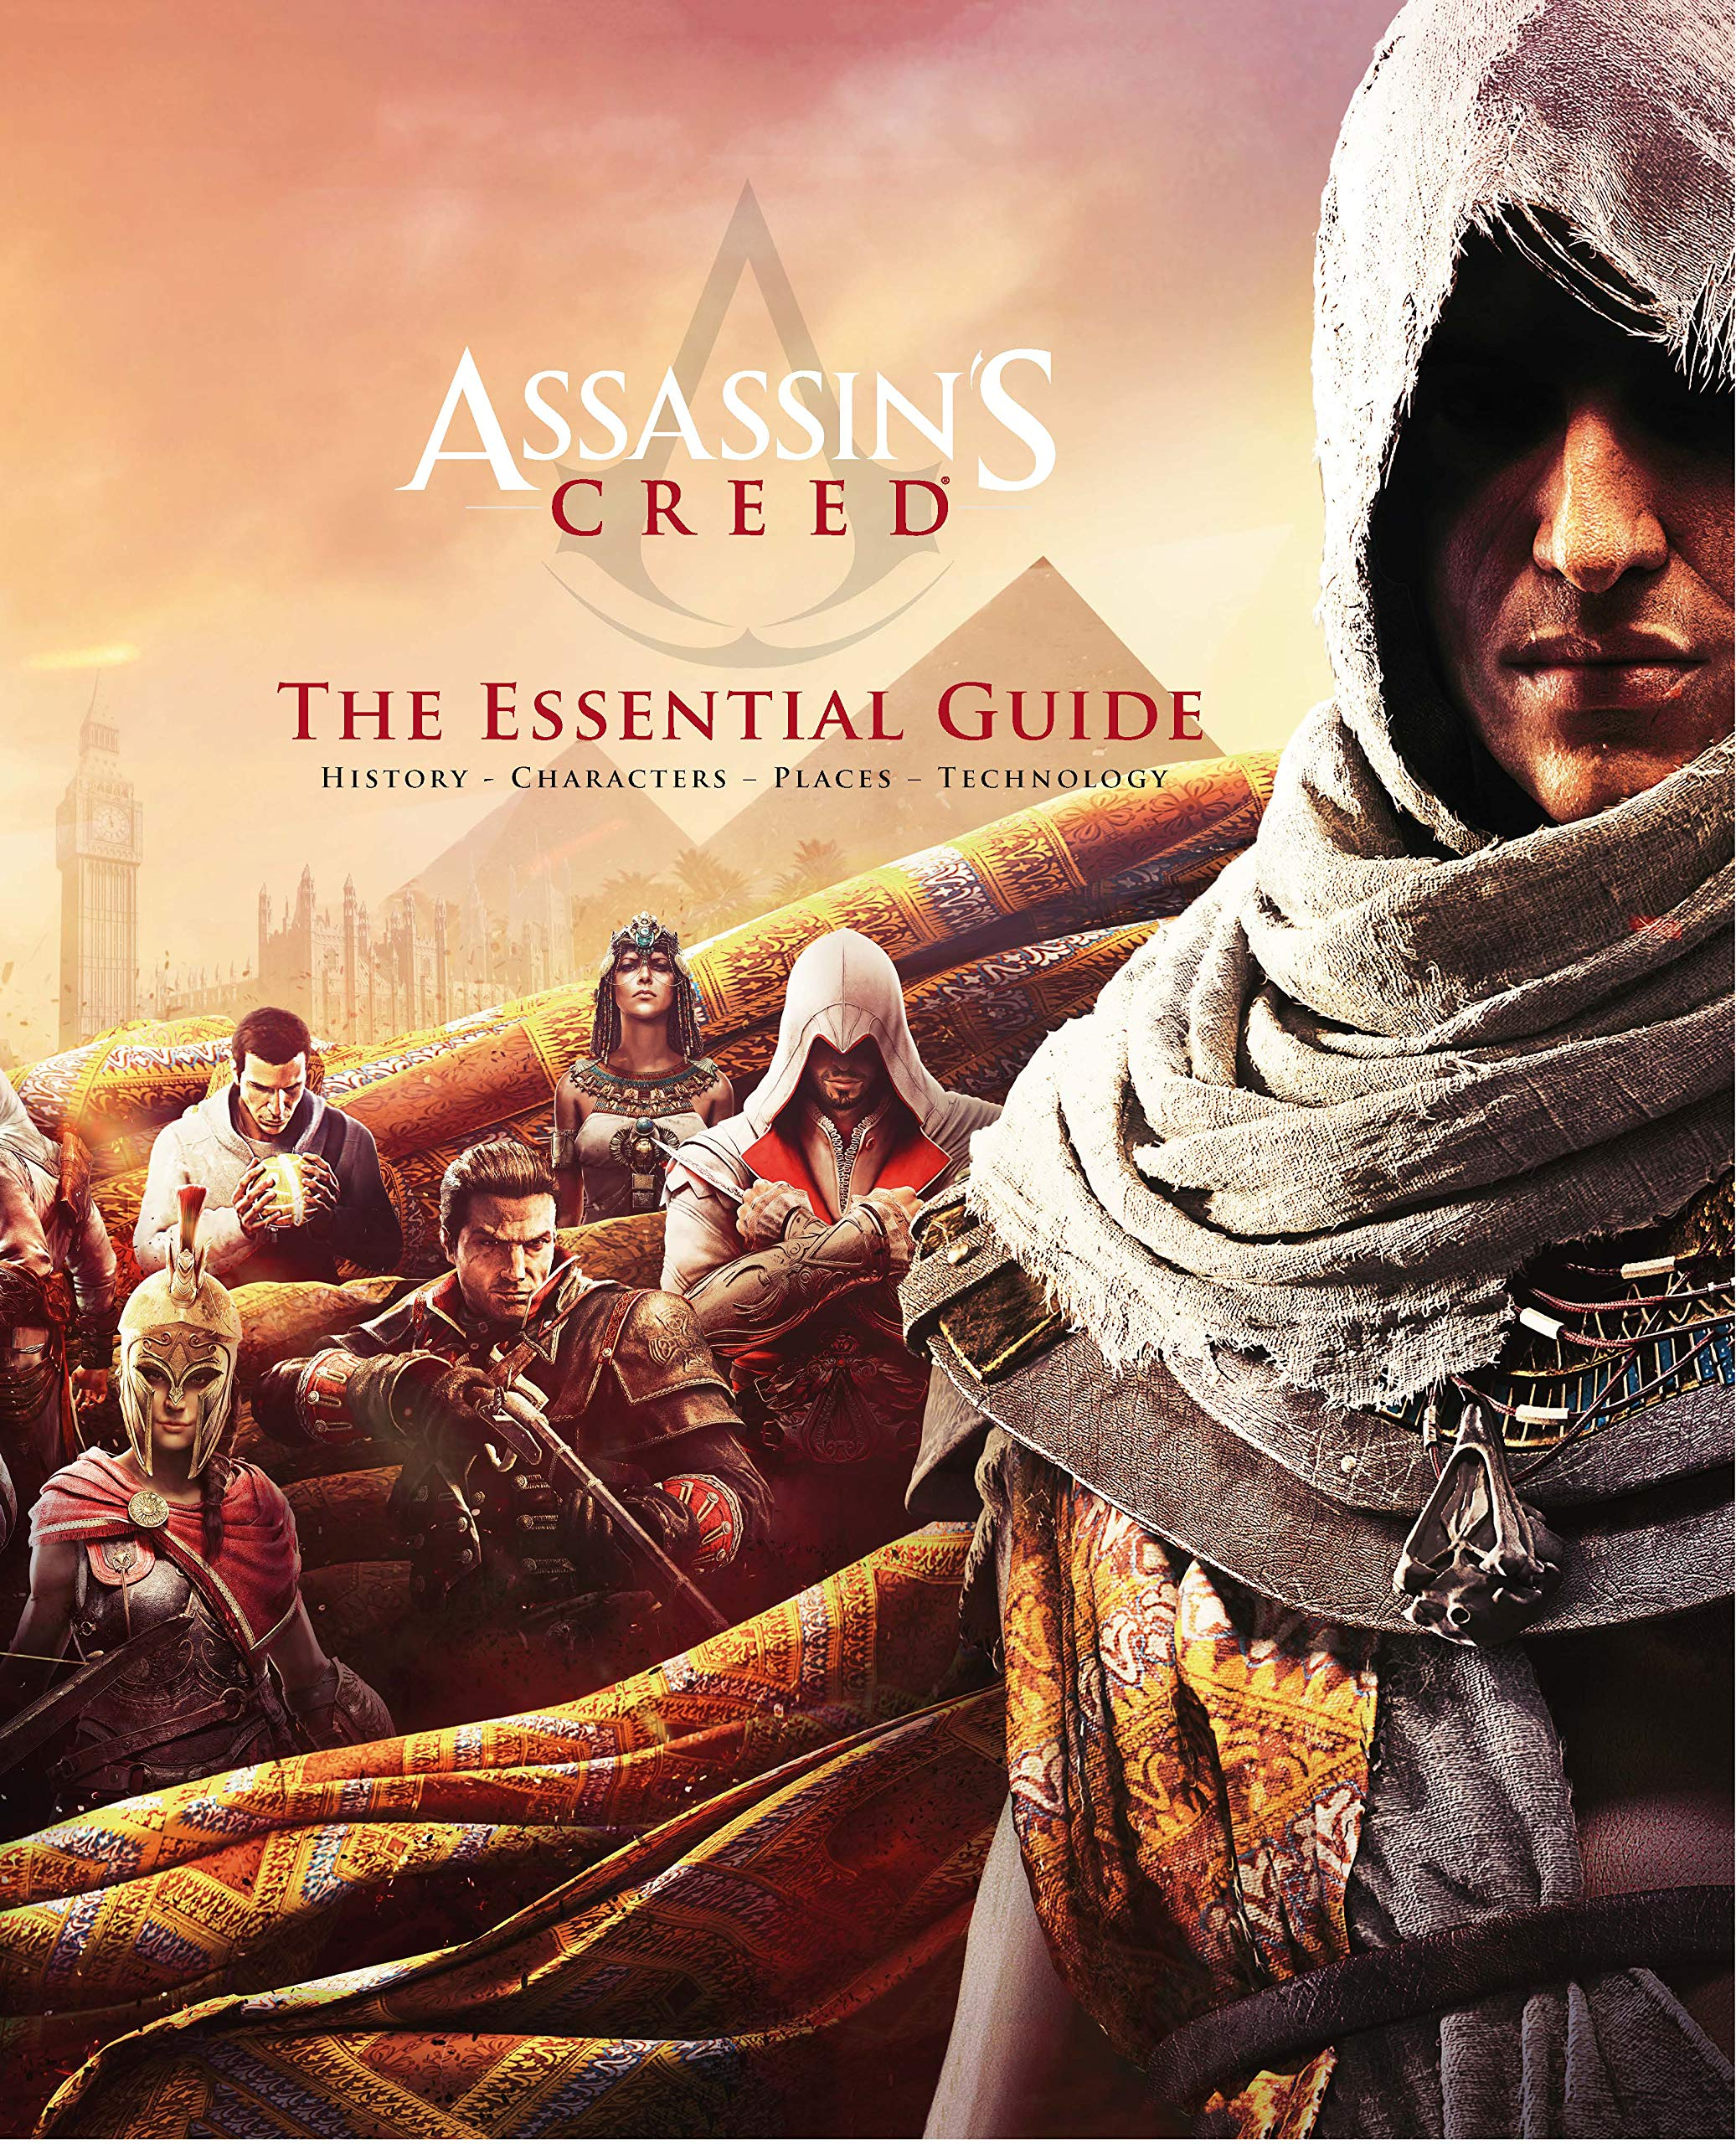 Ghid Assassin's Creed The Essential Guide Hardcover 0